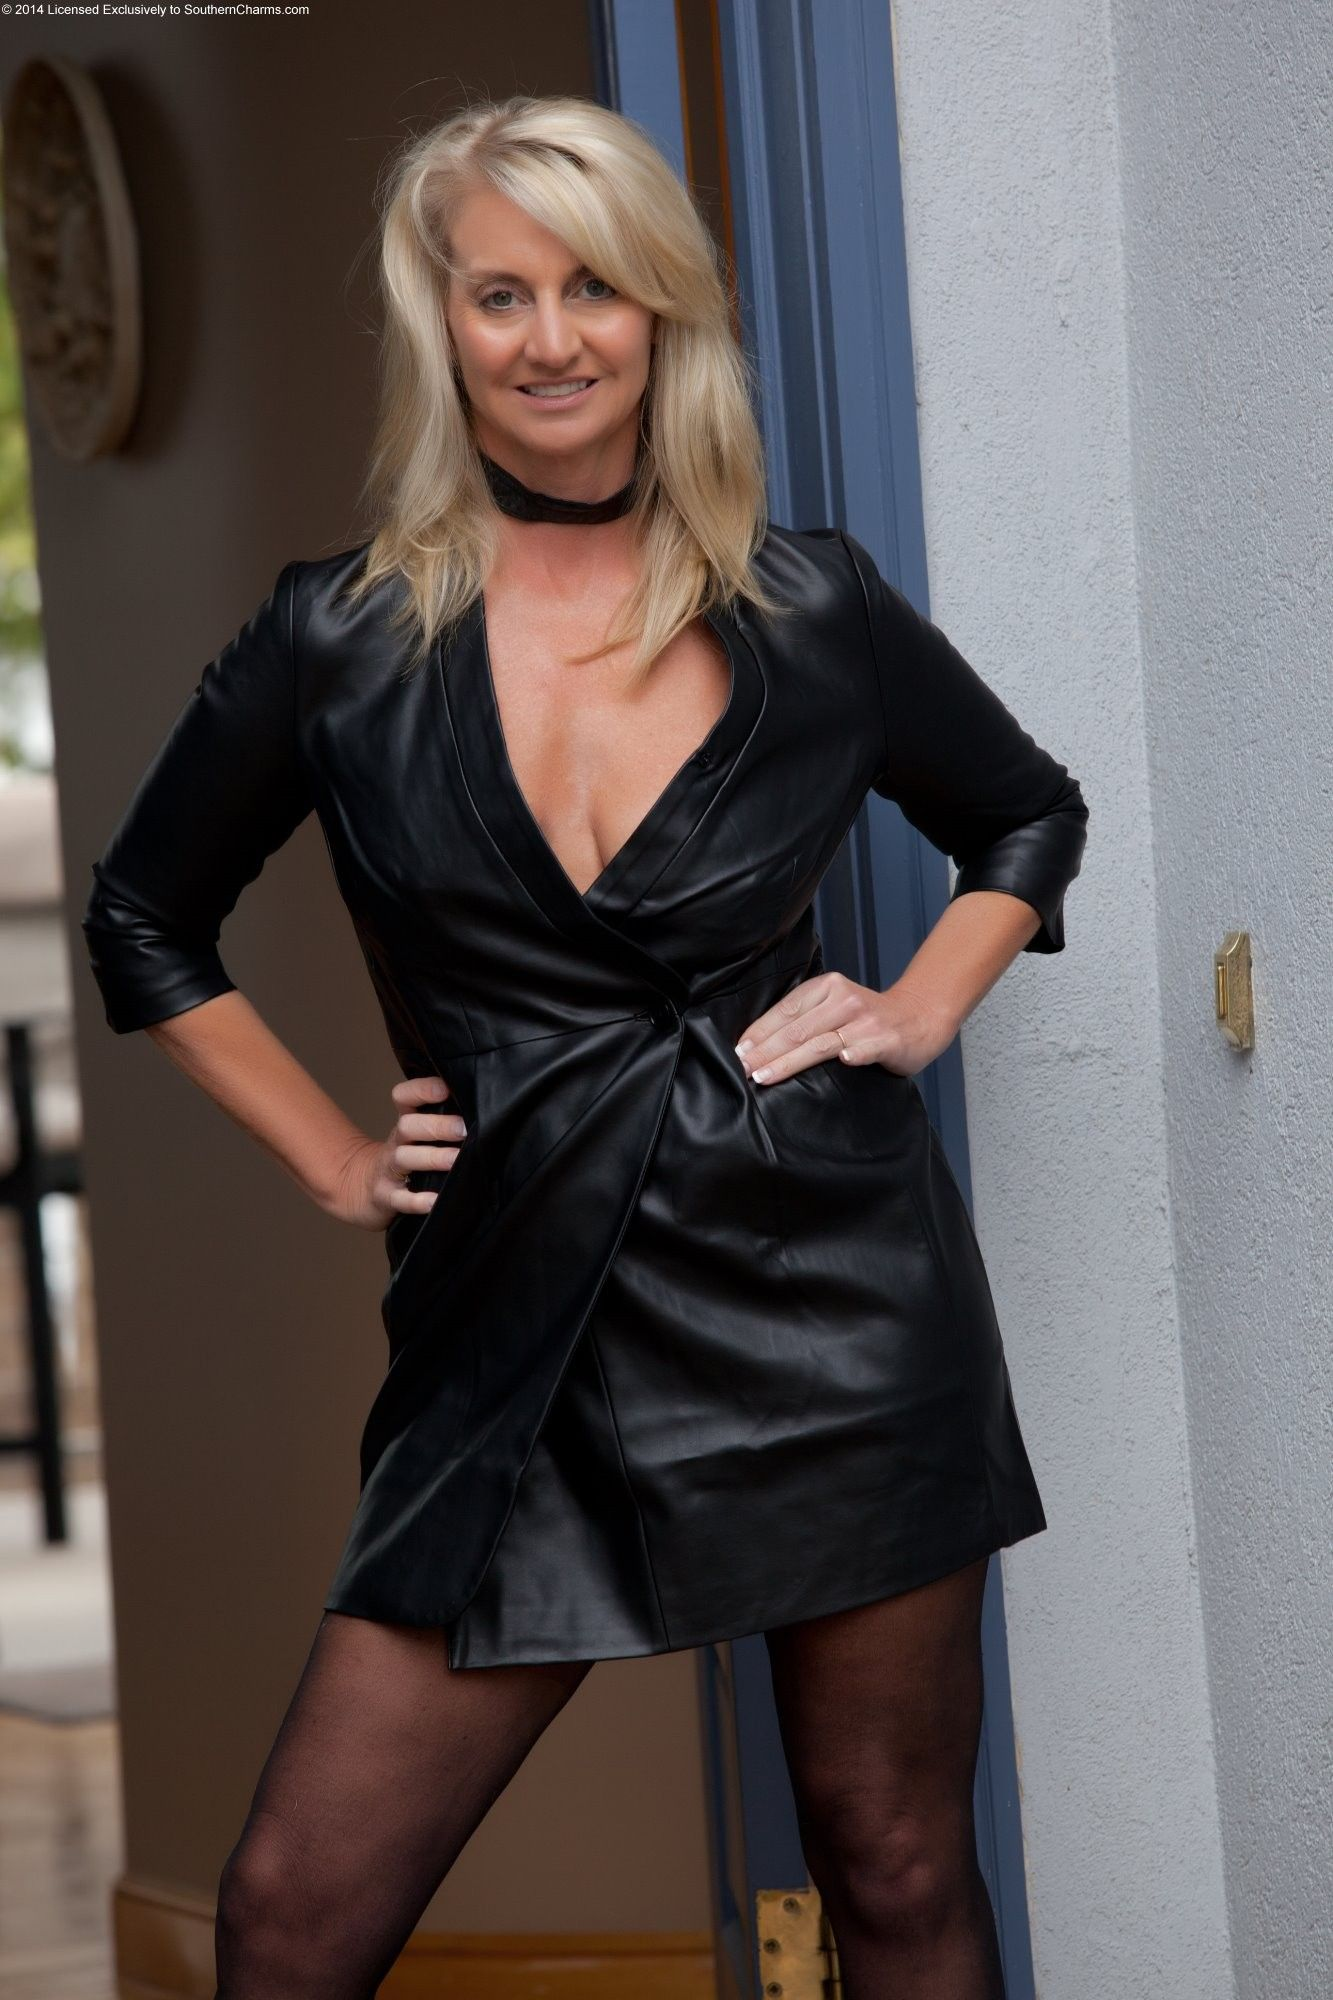 Great Leather Milf  Women In Leather - Leather, Leather -6028